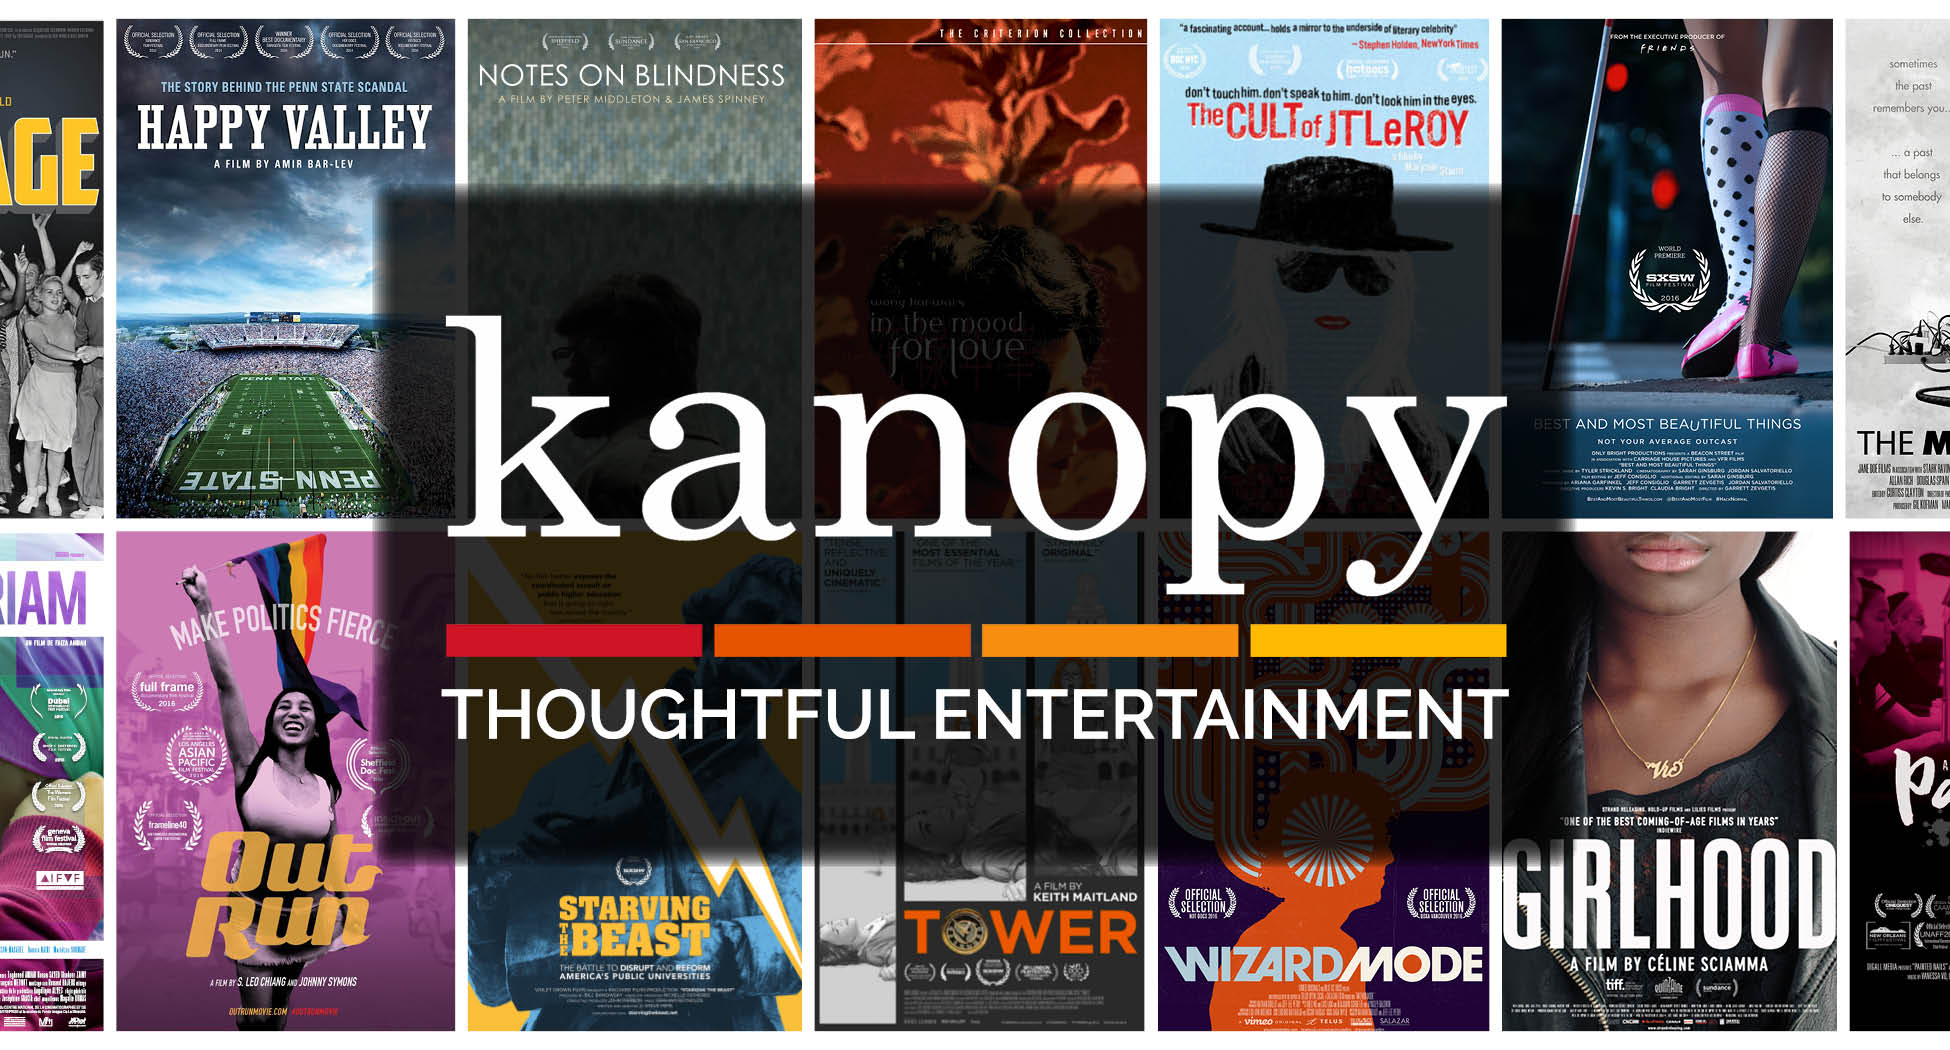 kanopy picture